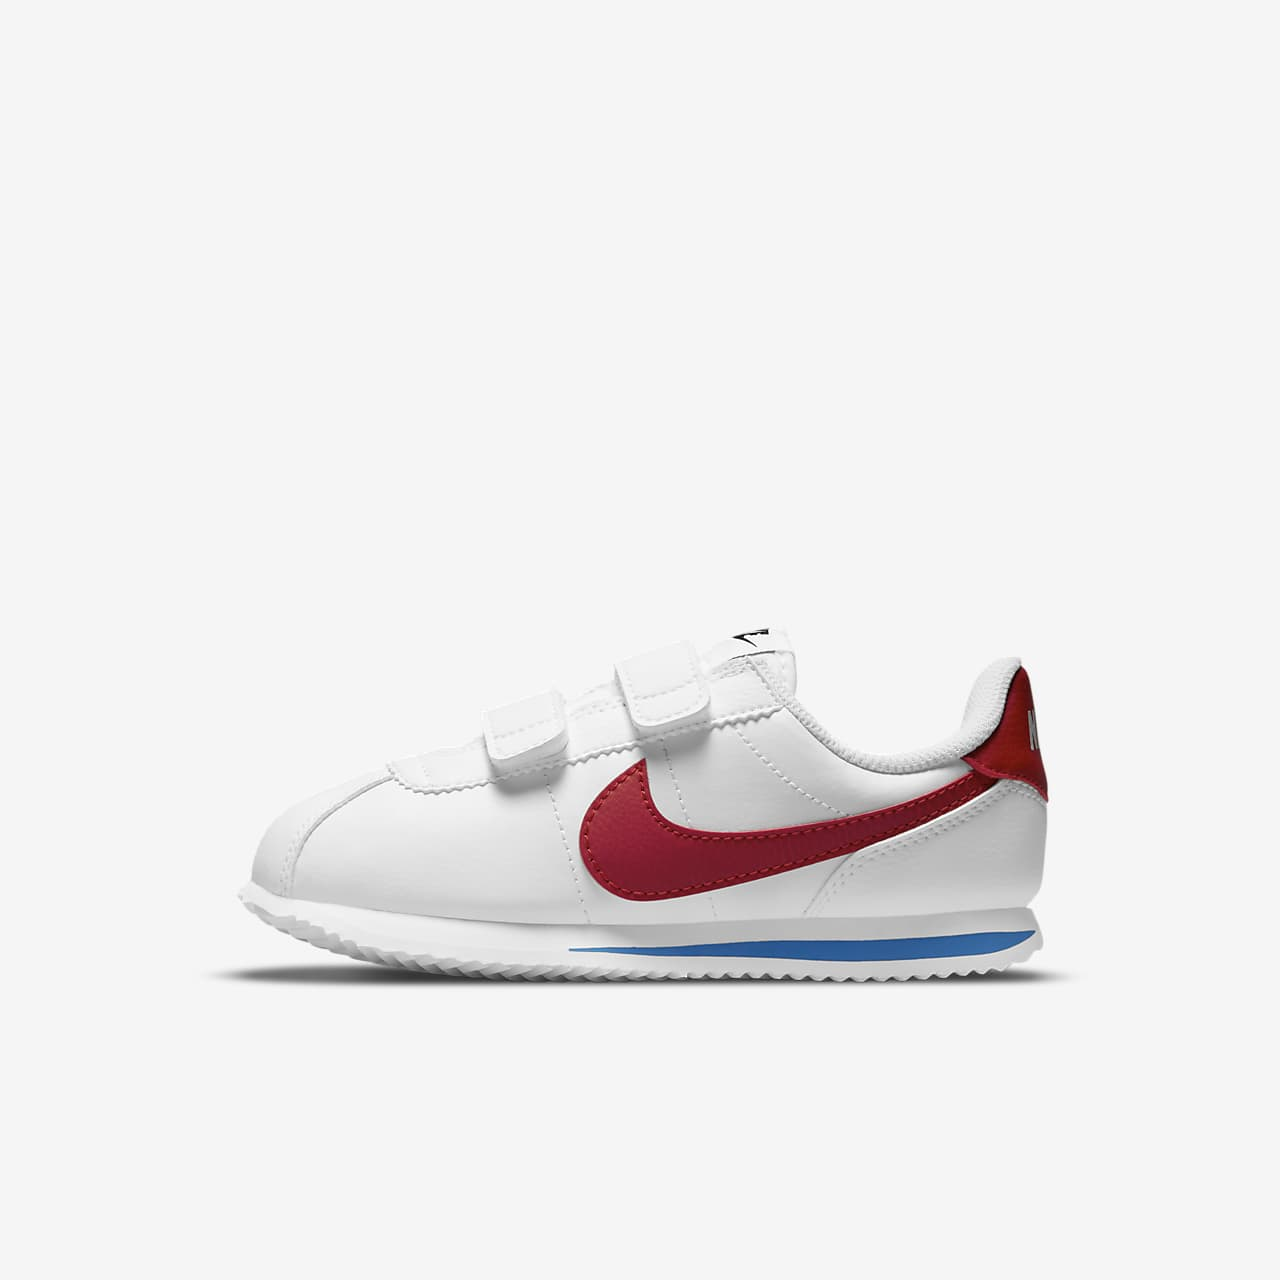 more photos 82aac af5c1 ... Nike Cortez Basic SL Little Kids Shoe